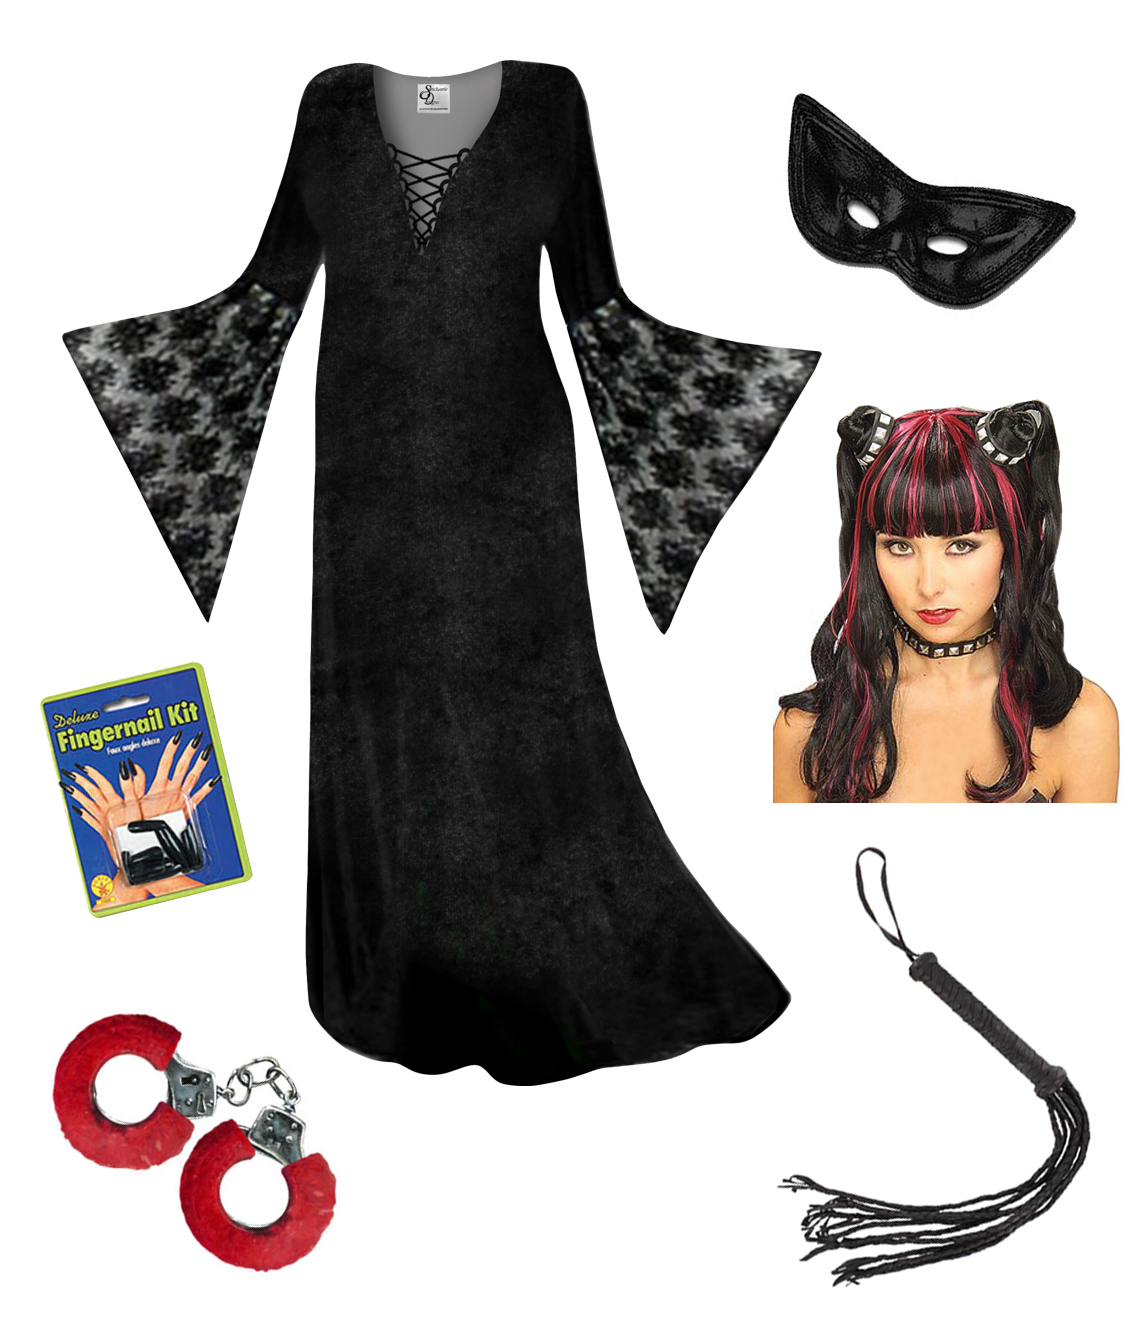 sale plus size dominatrix halloween costume lg xl 1x 2x 3x 4x 5x 6x 7x - Sale Halloween Costumes